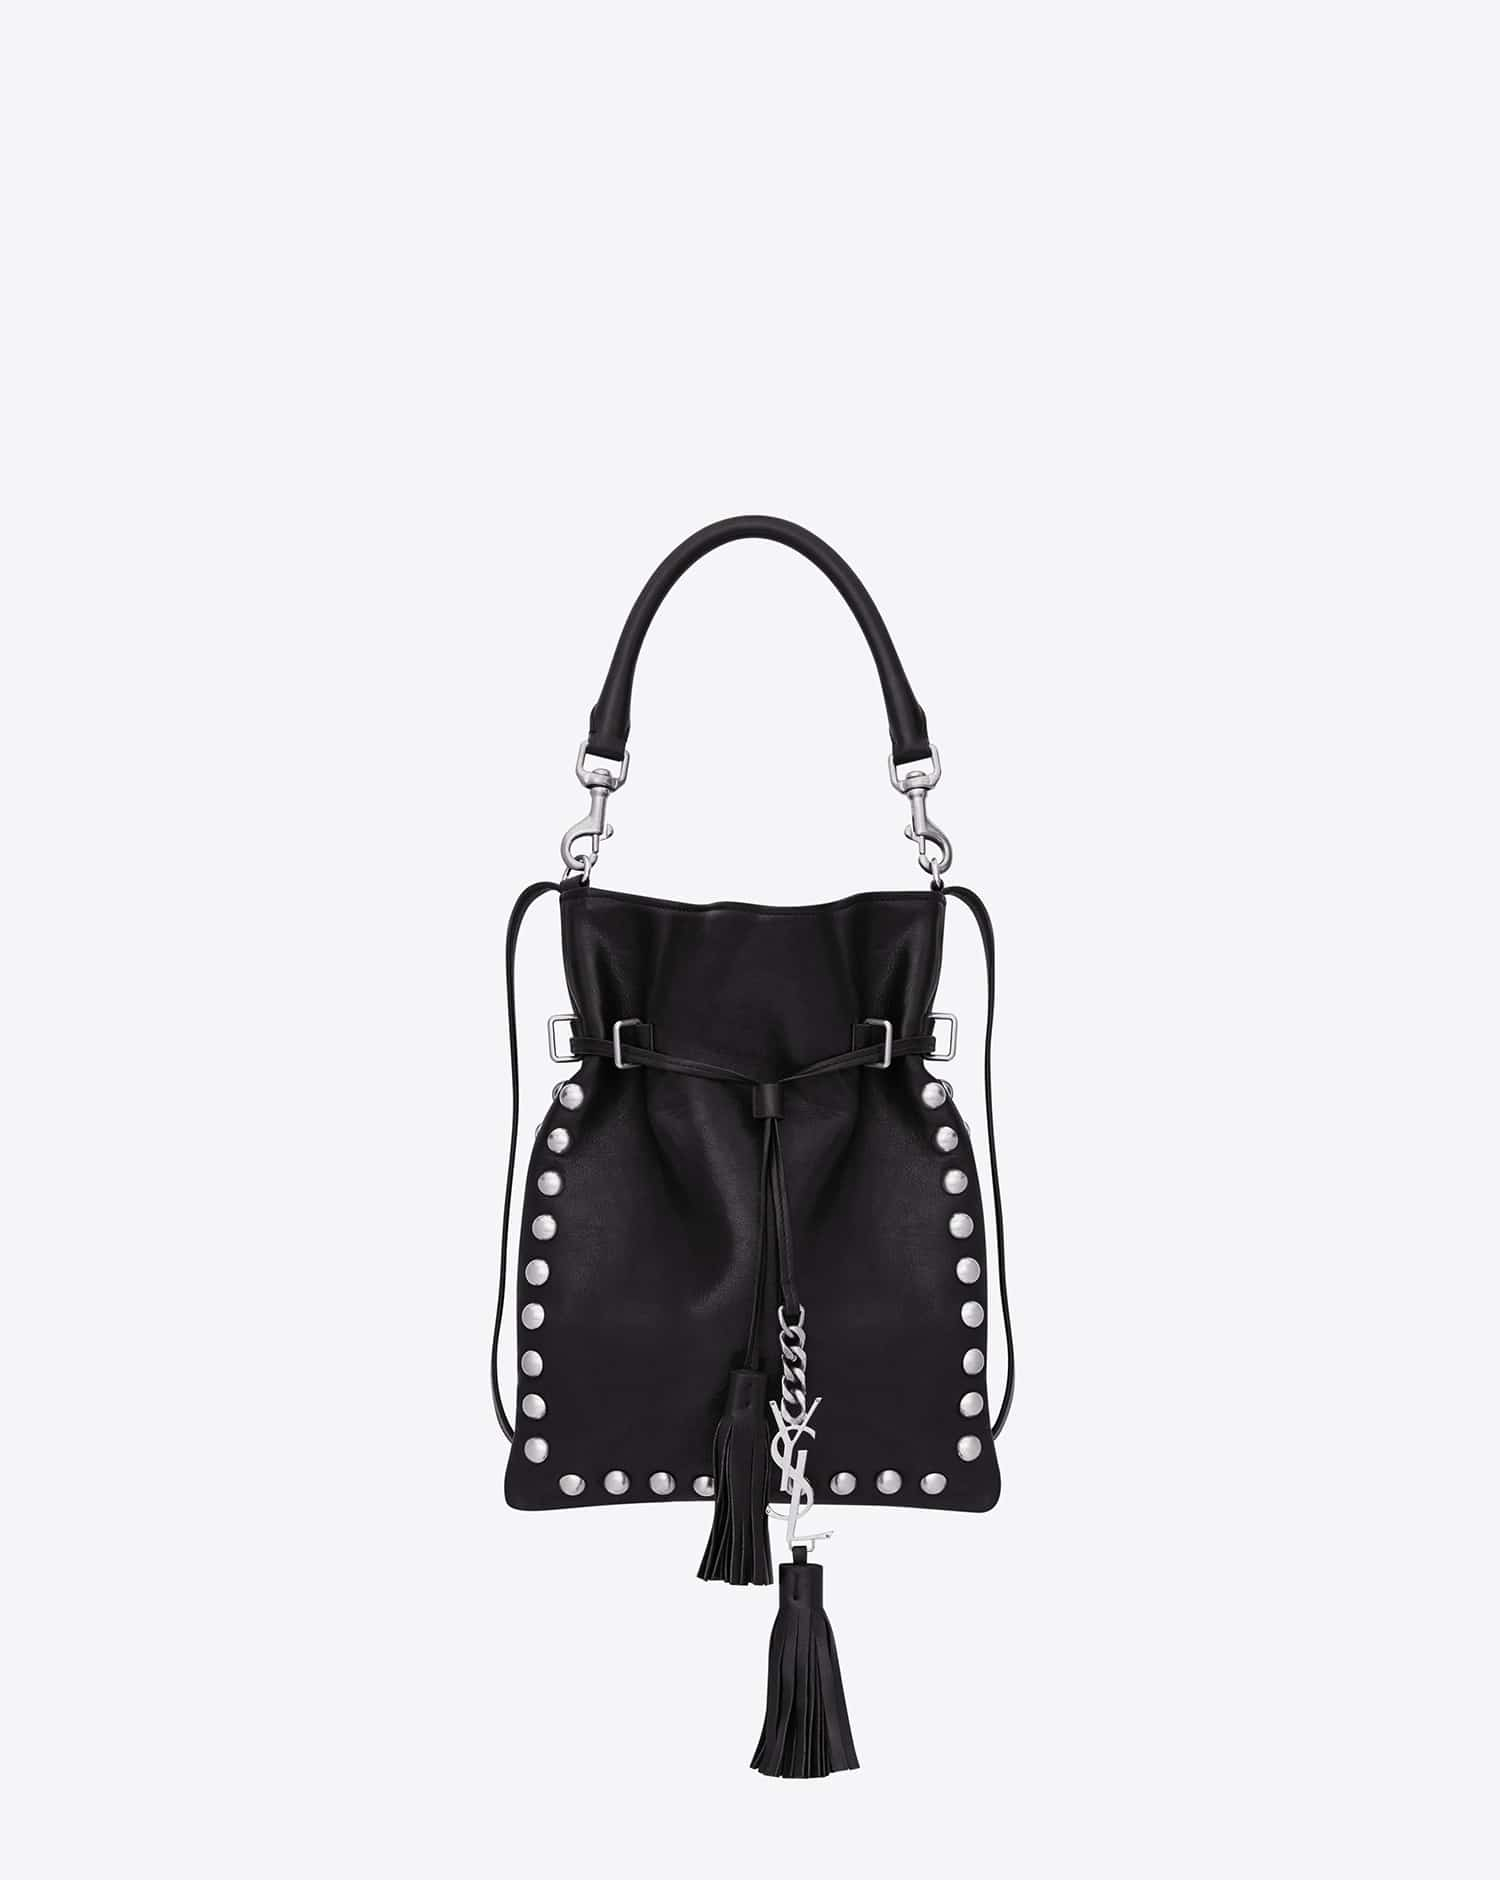 yves saint laurent sale bags - Saint Laurent Bag Price List Reference Guide | Spotted Fashion ...